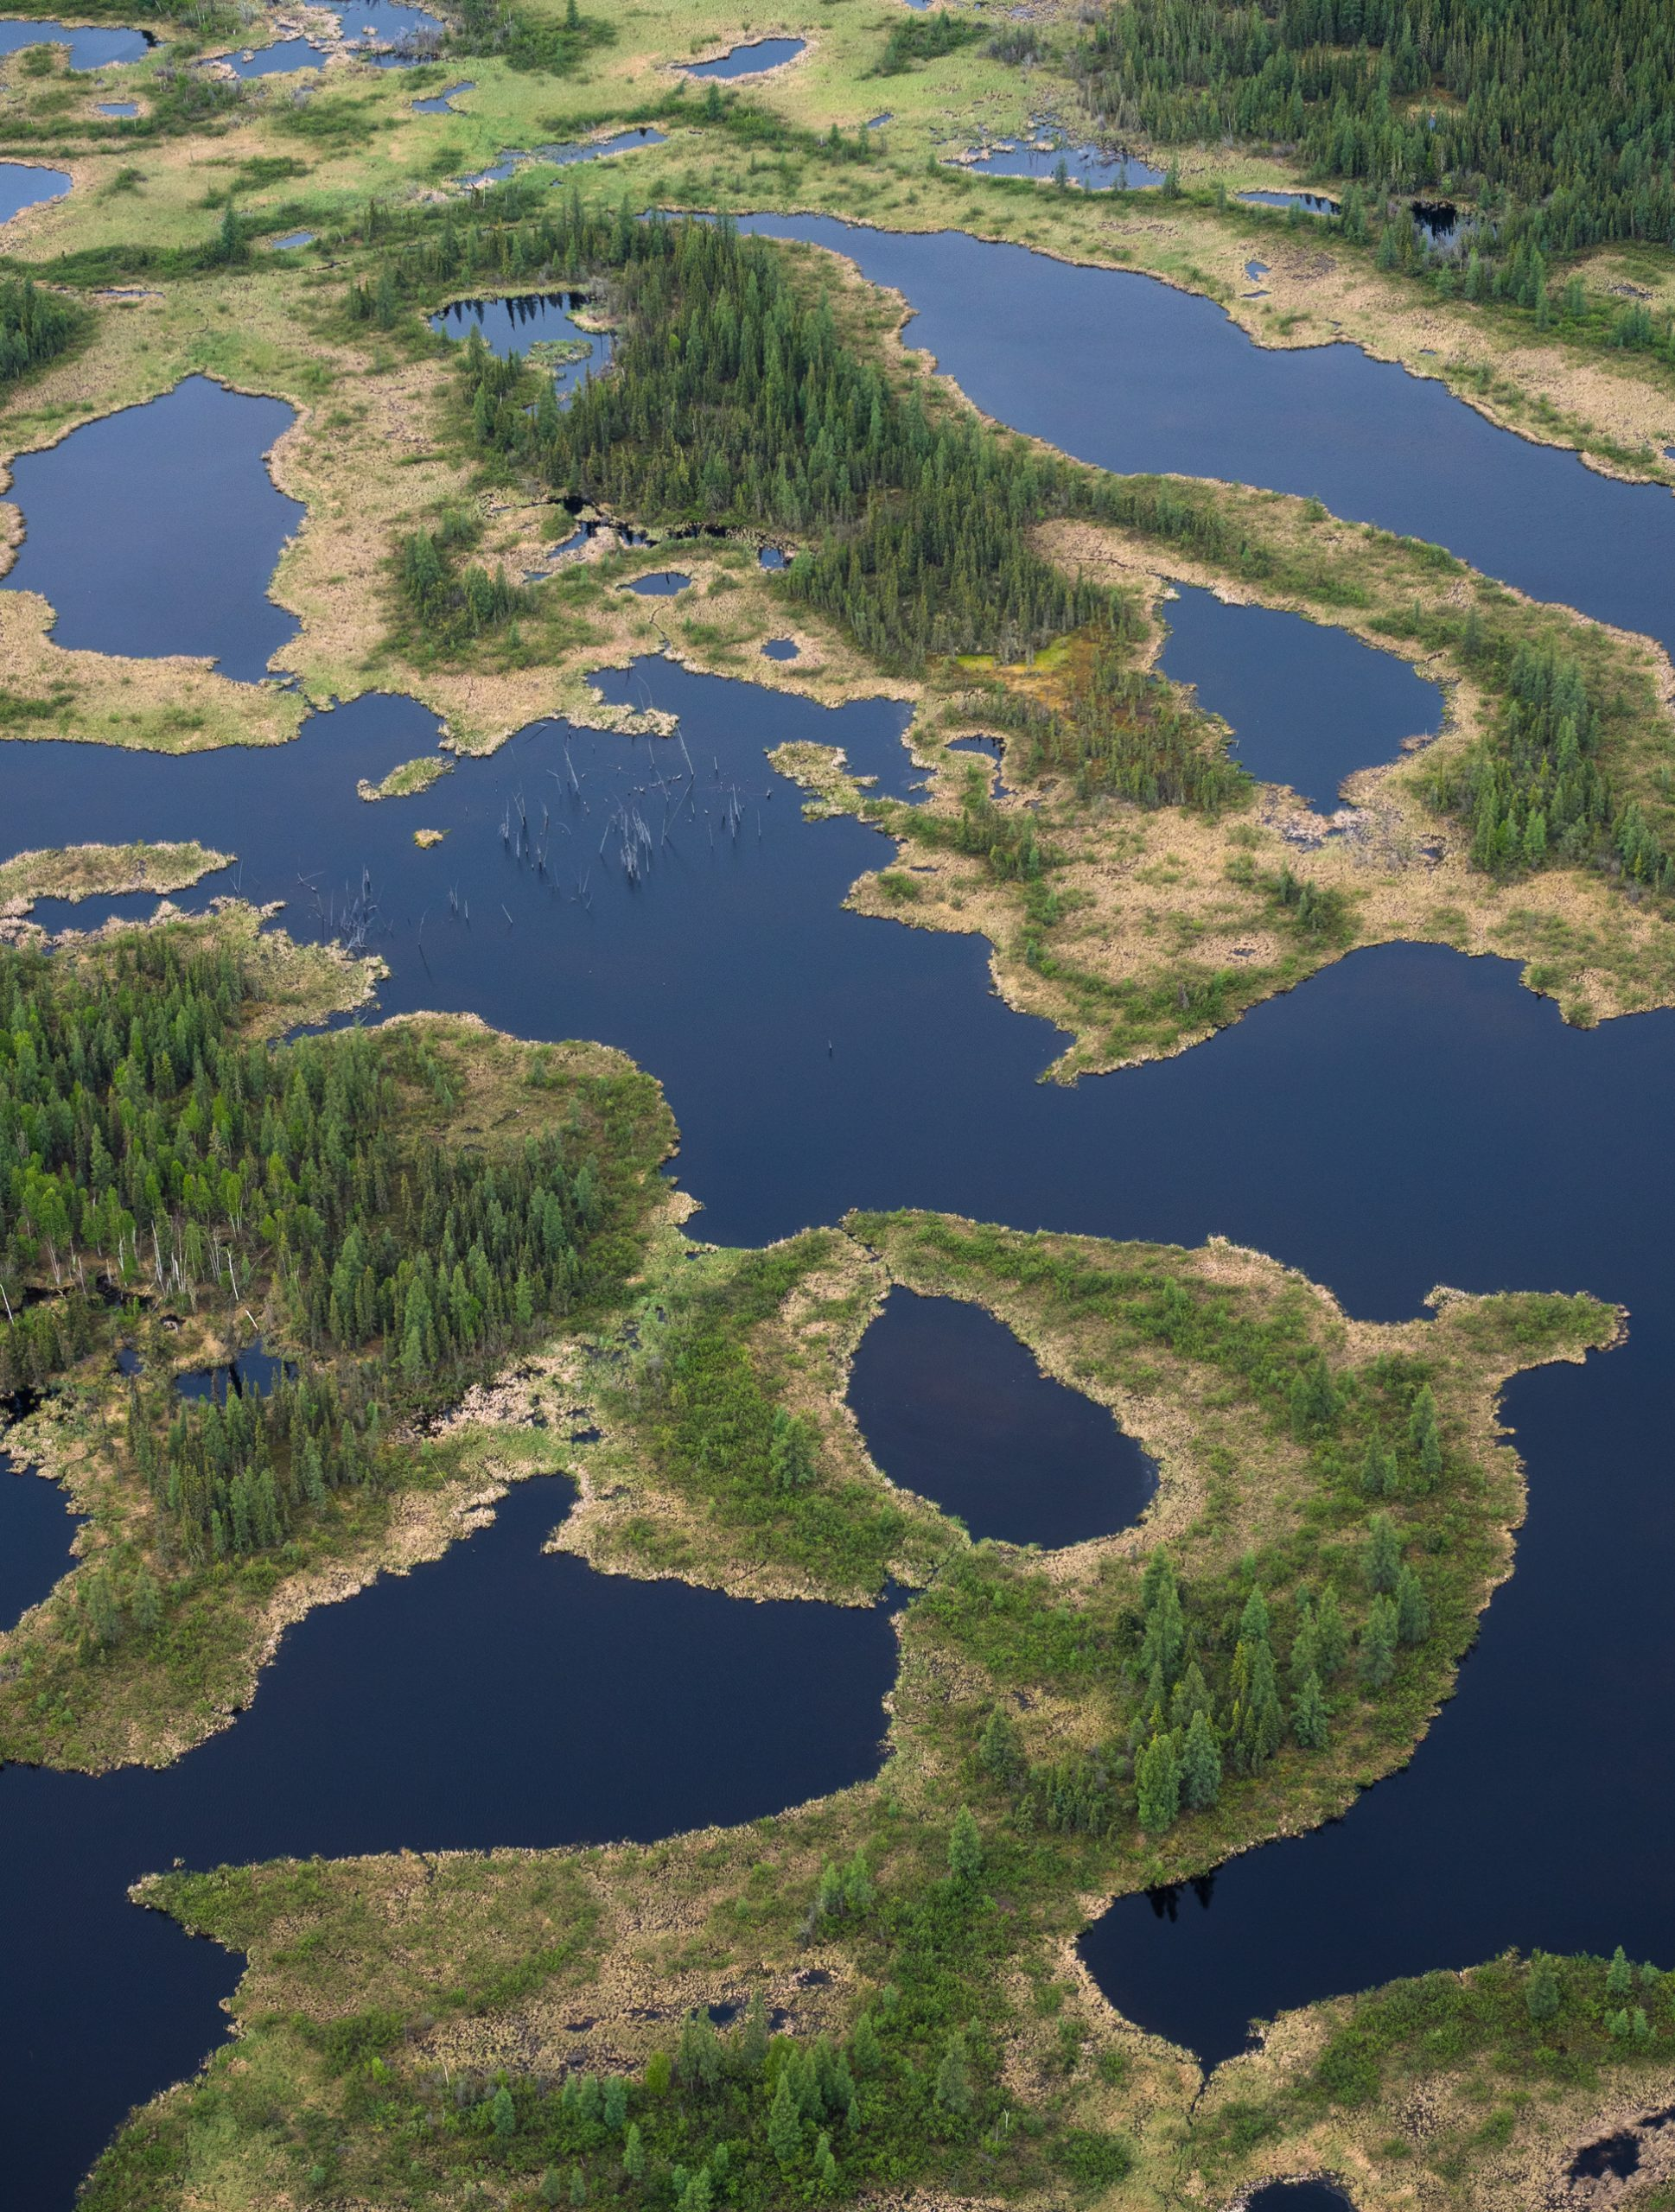 Patches of islands on blue water. Aerial view of the lowlands of Wood Buffalo National Park. Attributed to: Louis Bockner/Sierra Club BC